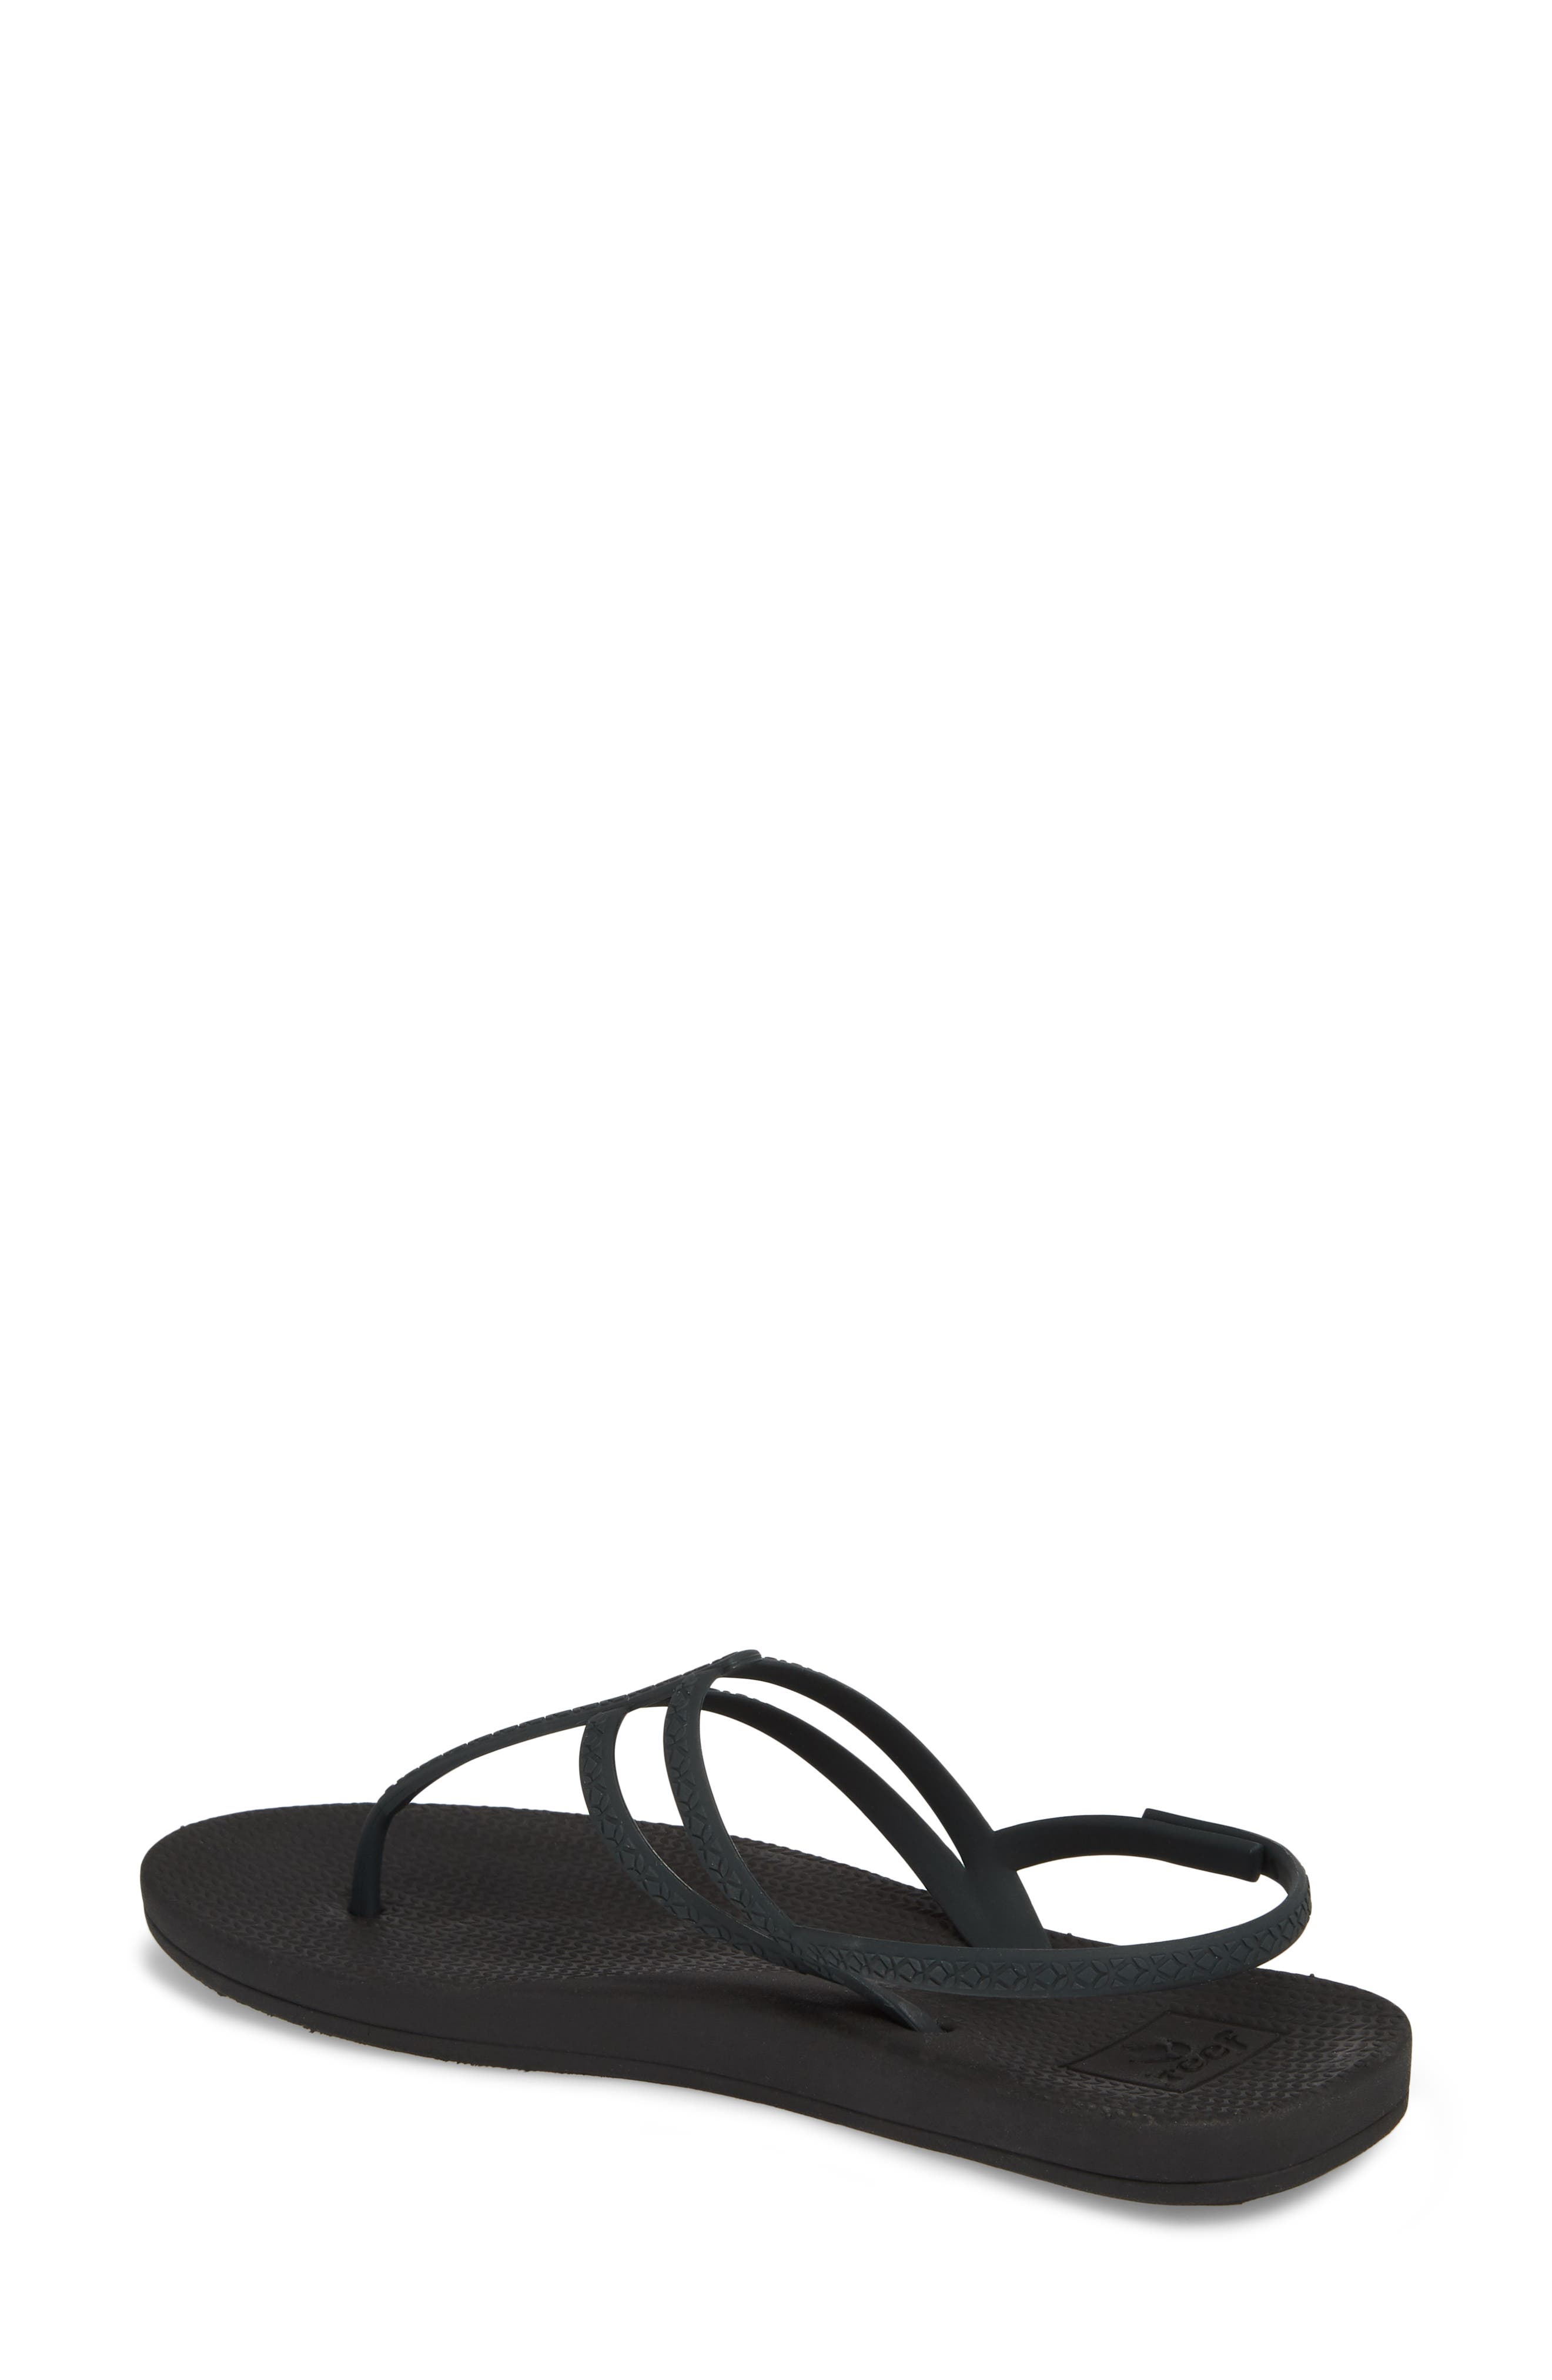 Escape Lux T-Strap Sandal,                             Alternate thumbnail 2, color,                             Black